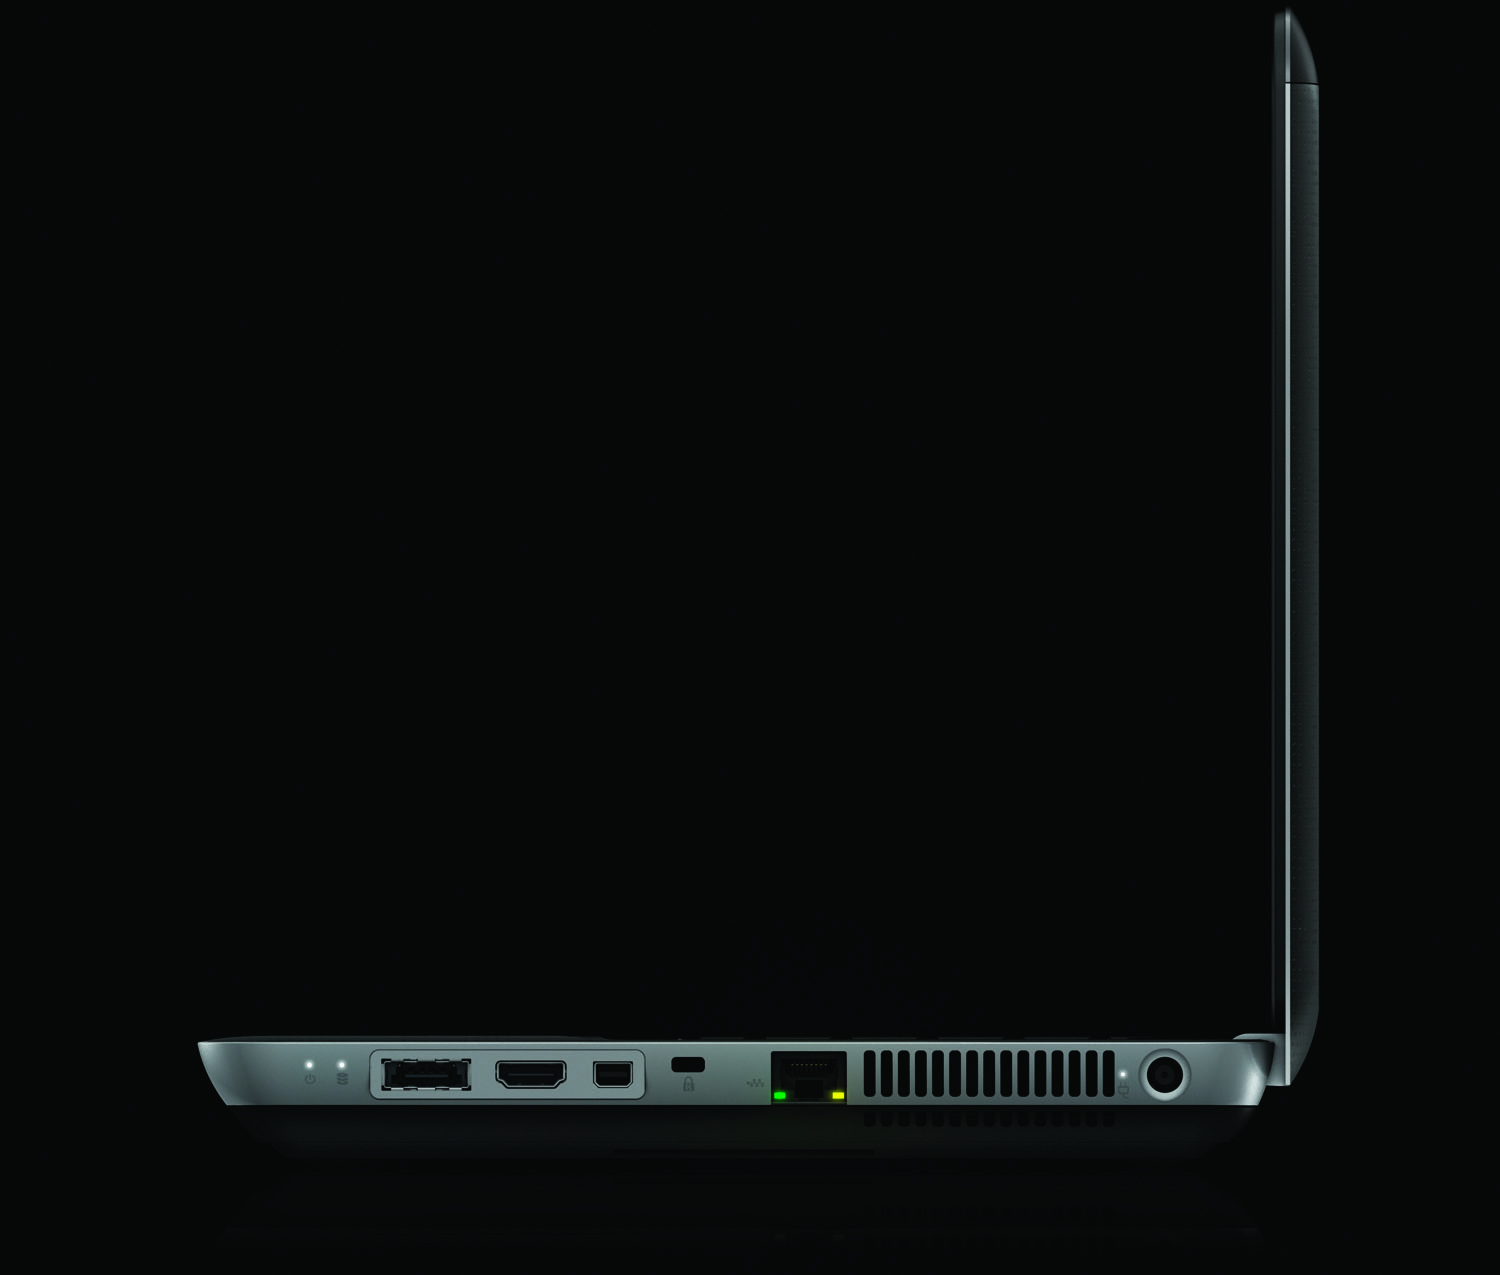 HP Envy 14, left profile on black